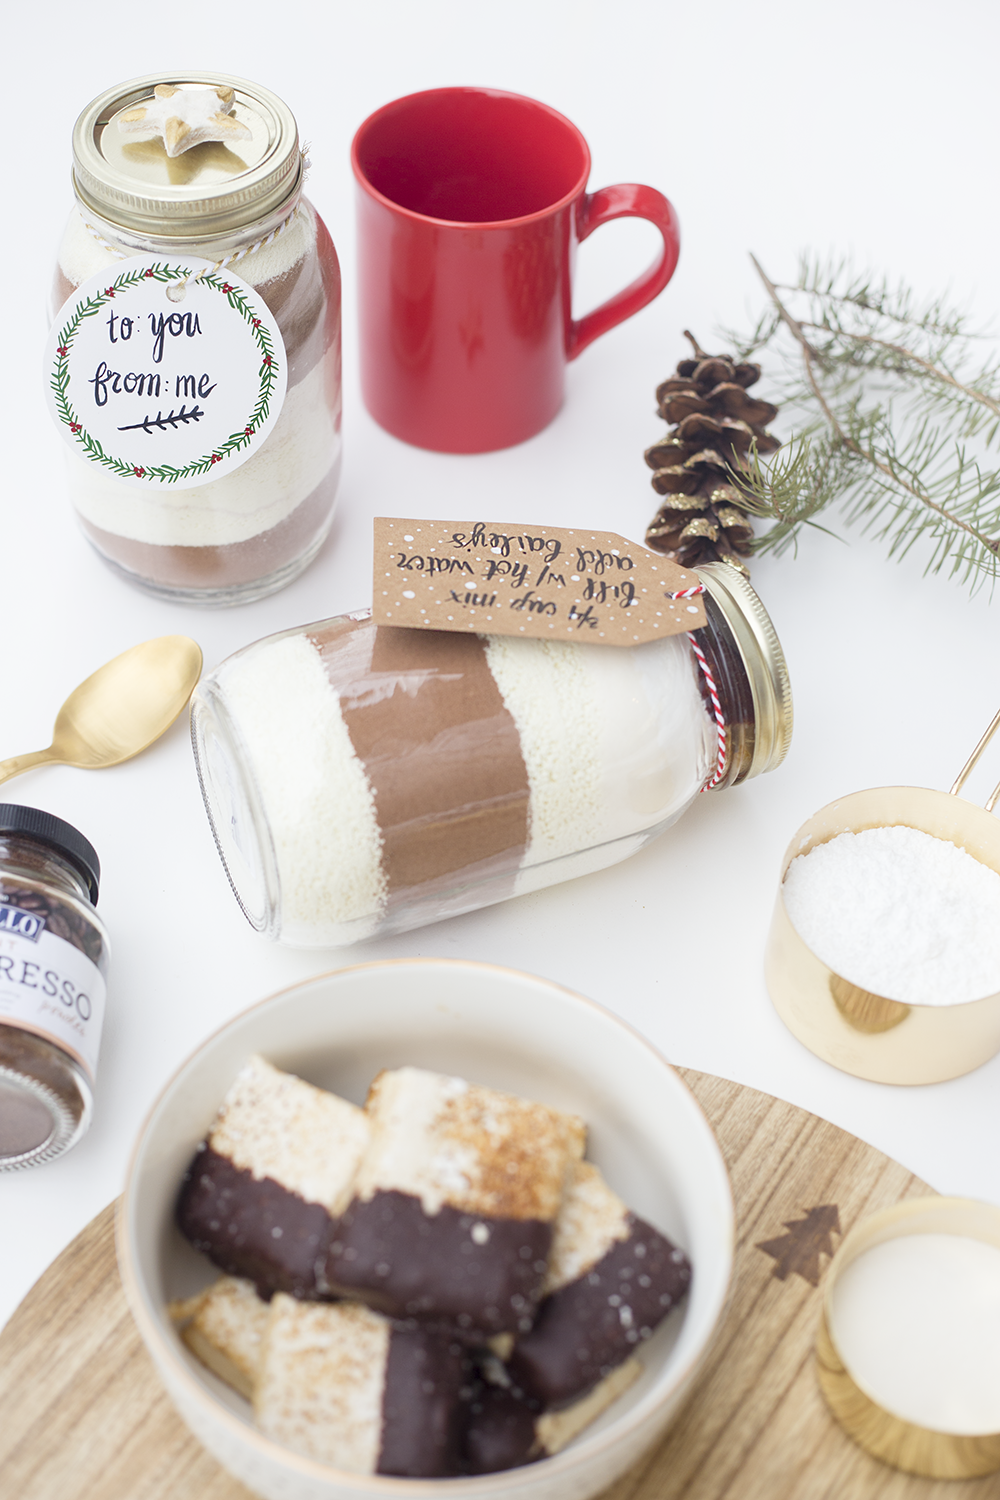 Need a last minute gift? Or just a great recipe? This is the creamiest hot chocolate you've ever tasted and when you layer it in a mason jar, it's an adorable gift! Click through to read the recipe!